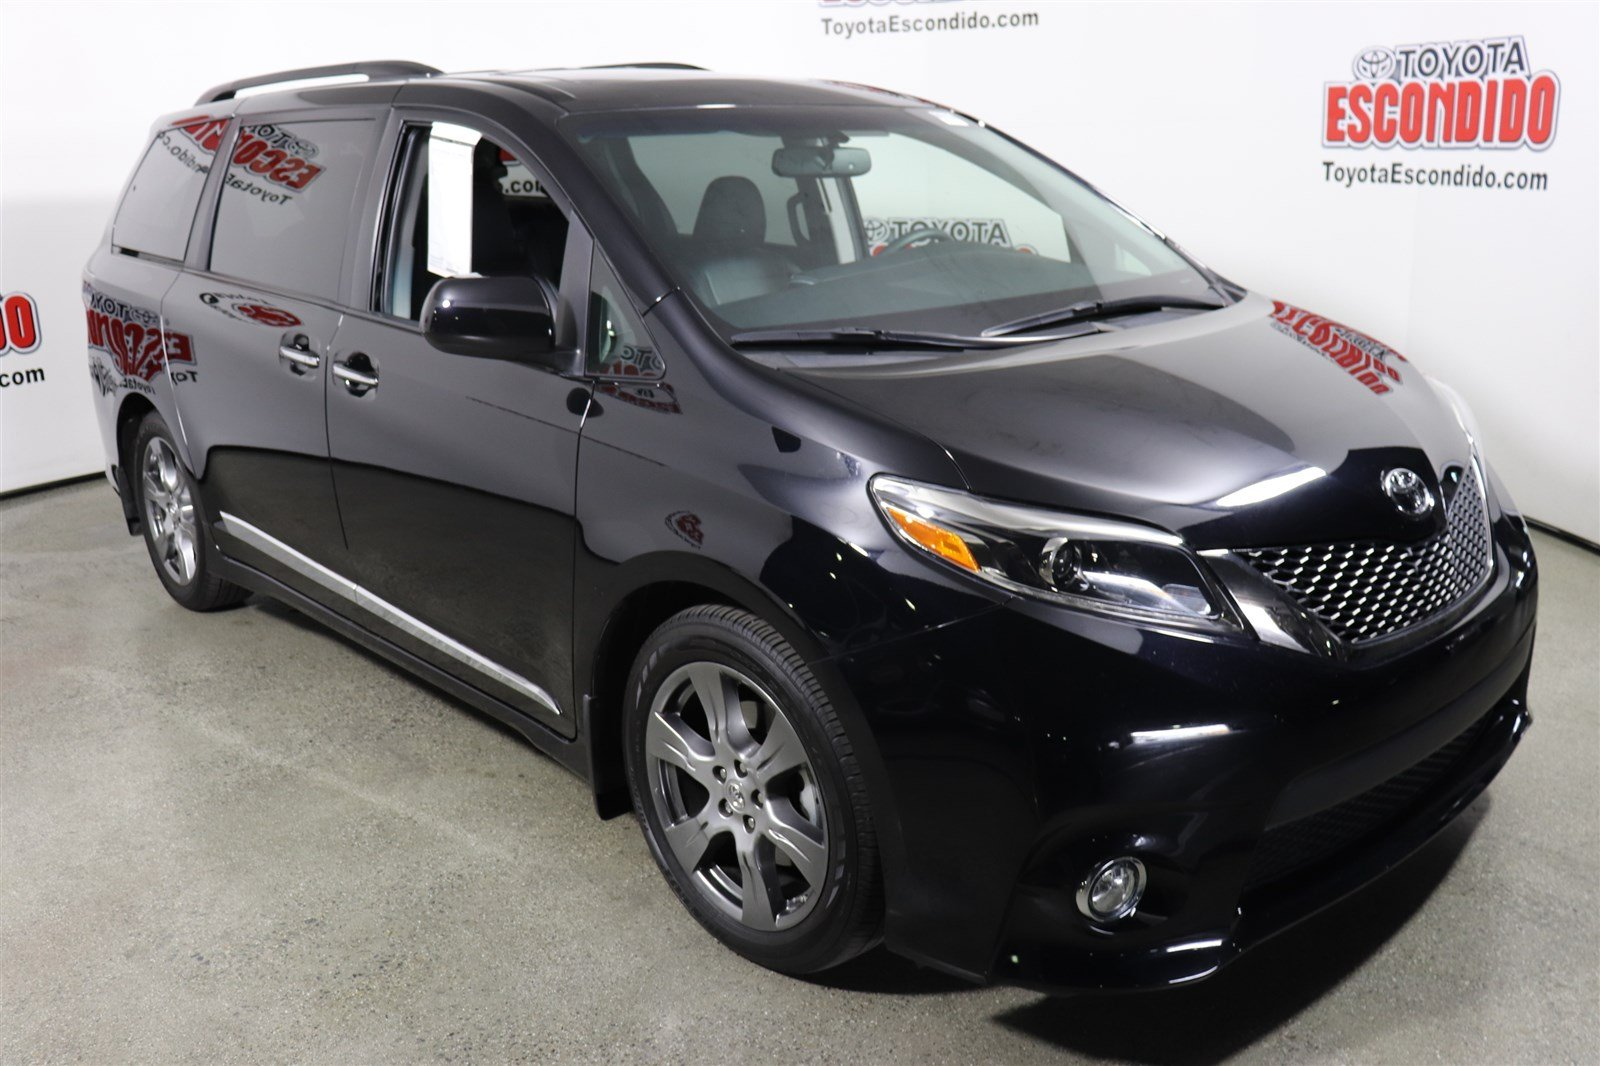 New 2017 Toyota Sienna Se Premium Mini Van Passenger In Escondido 1016849 Toyota Escondido